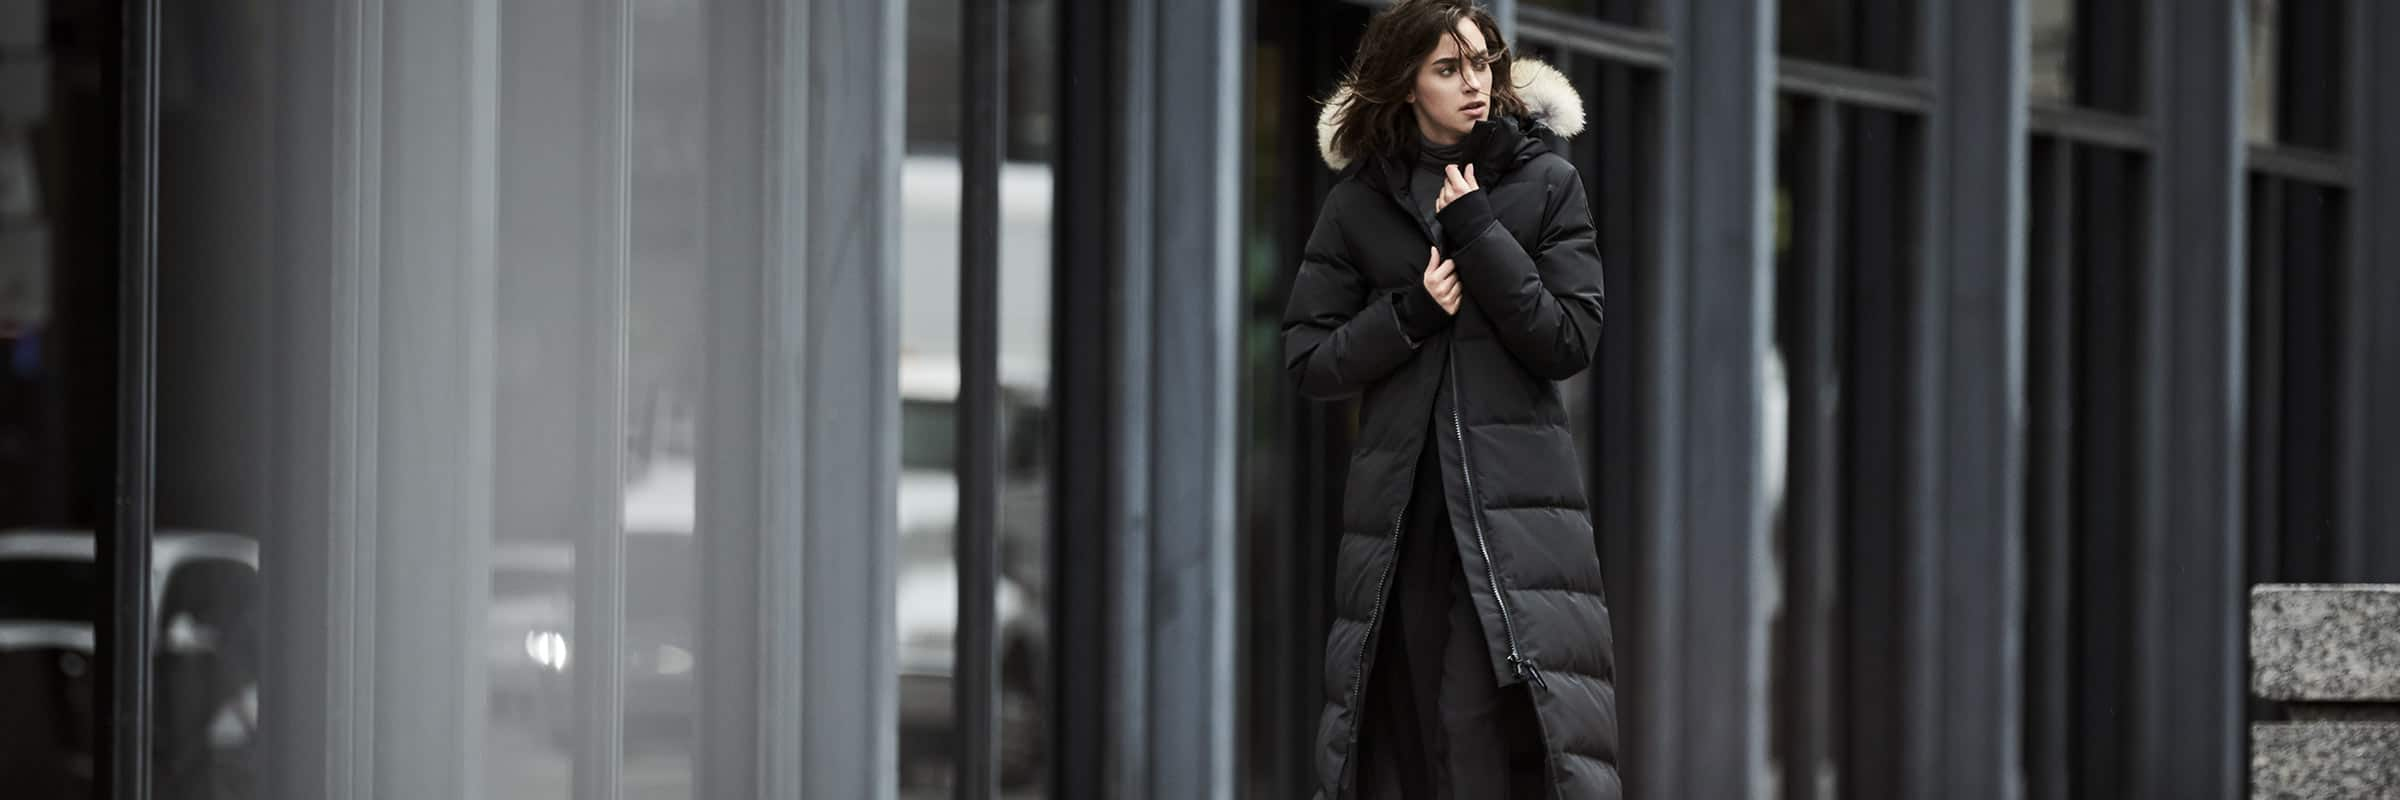 Canada Goose Fusion Fit: Winter Coats Designed for Petite Body Frames